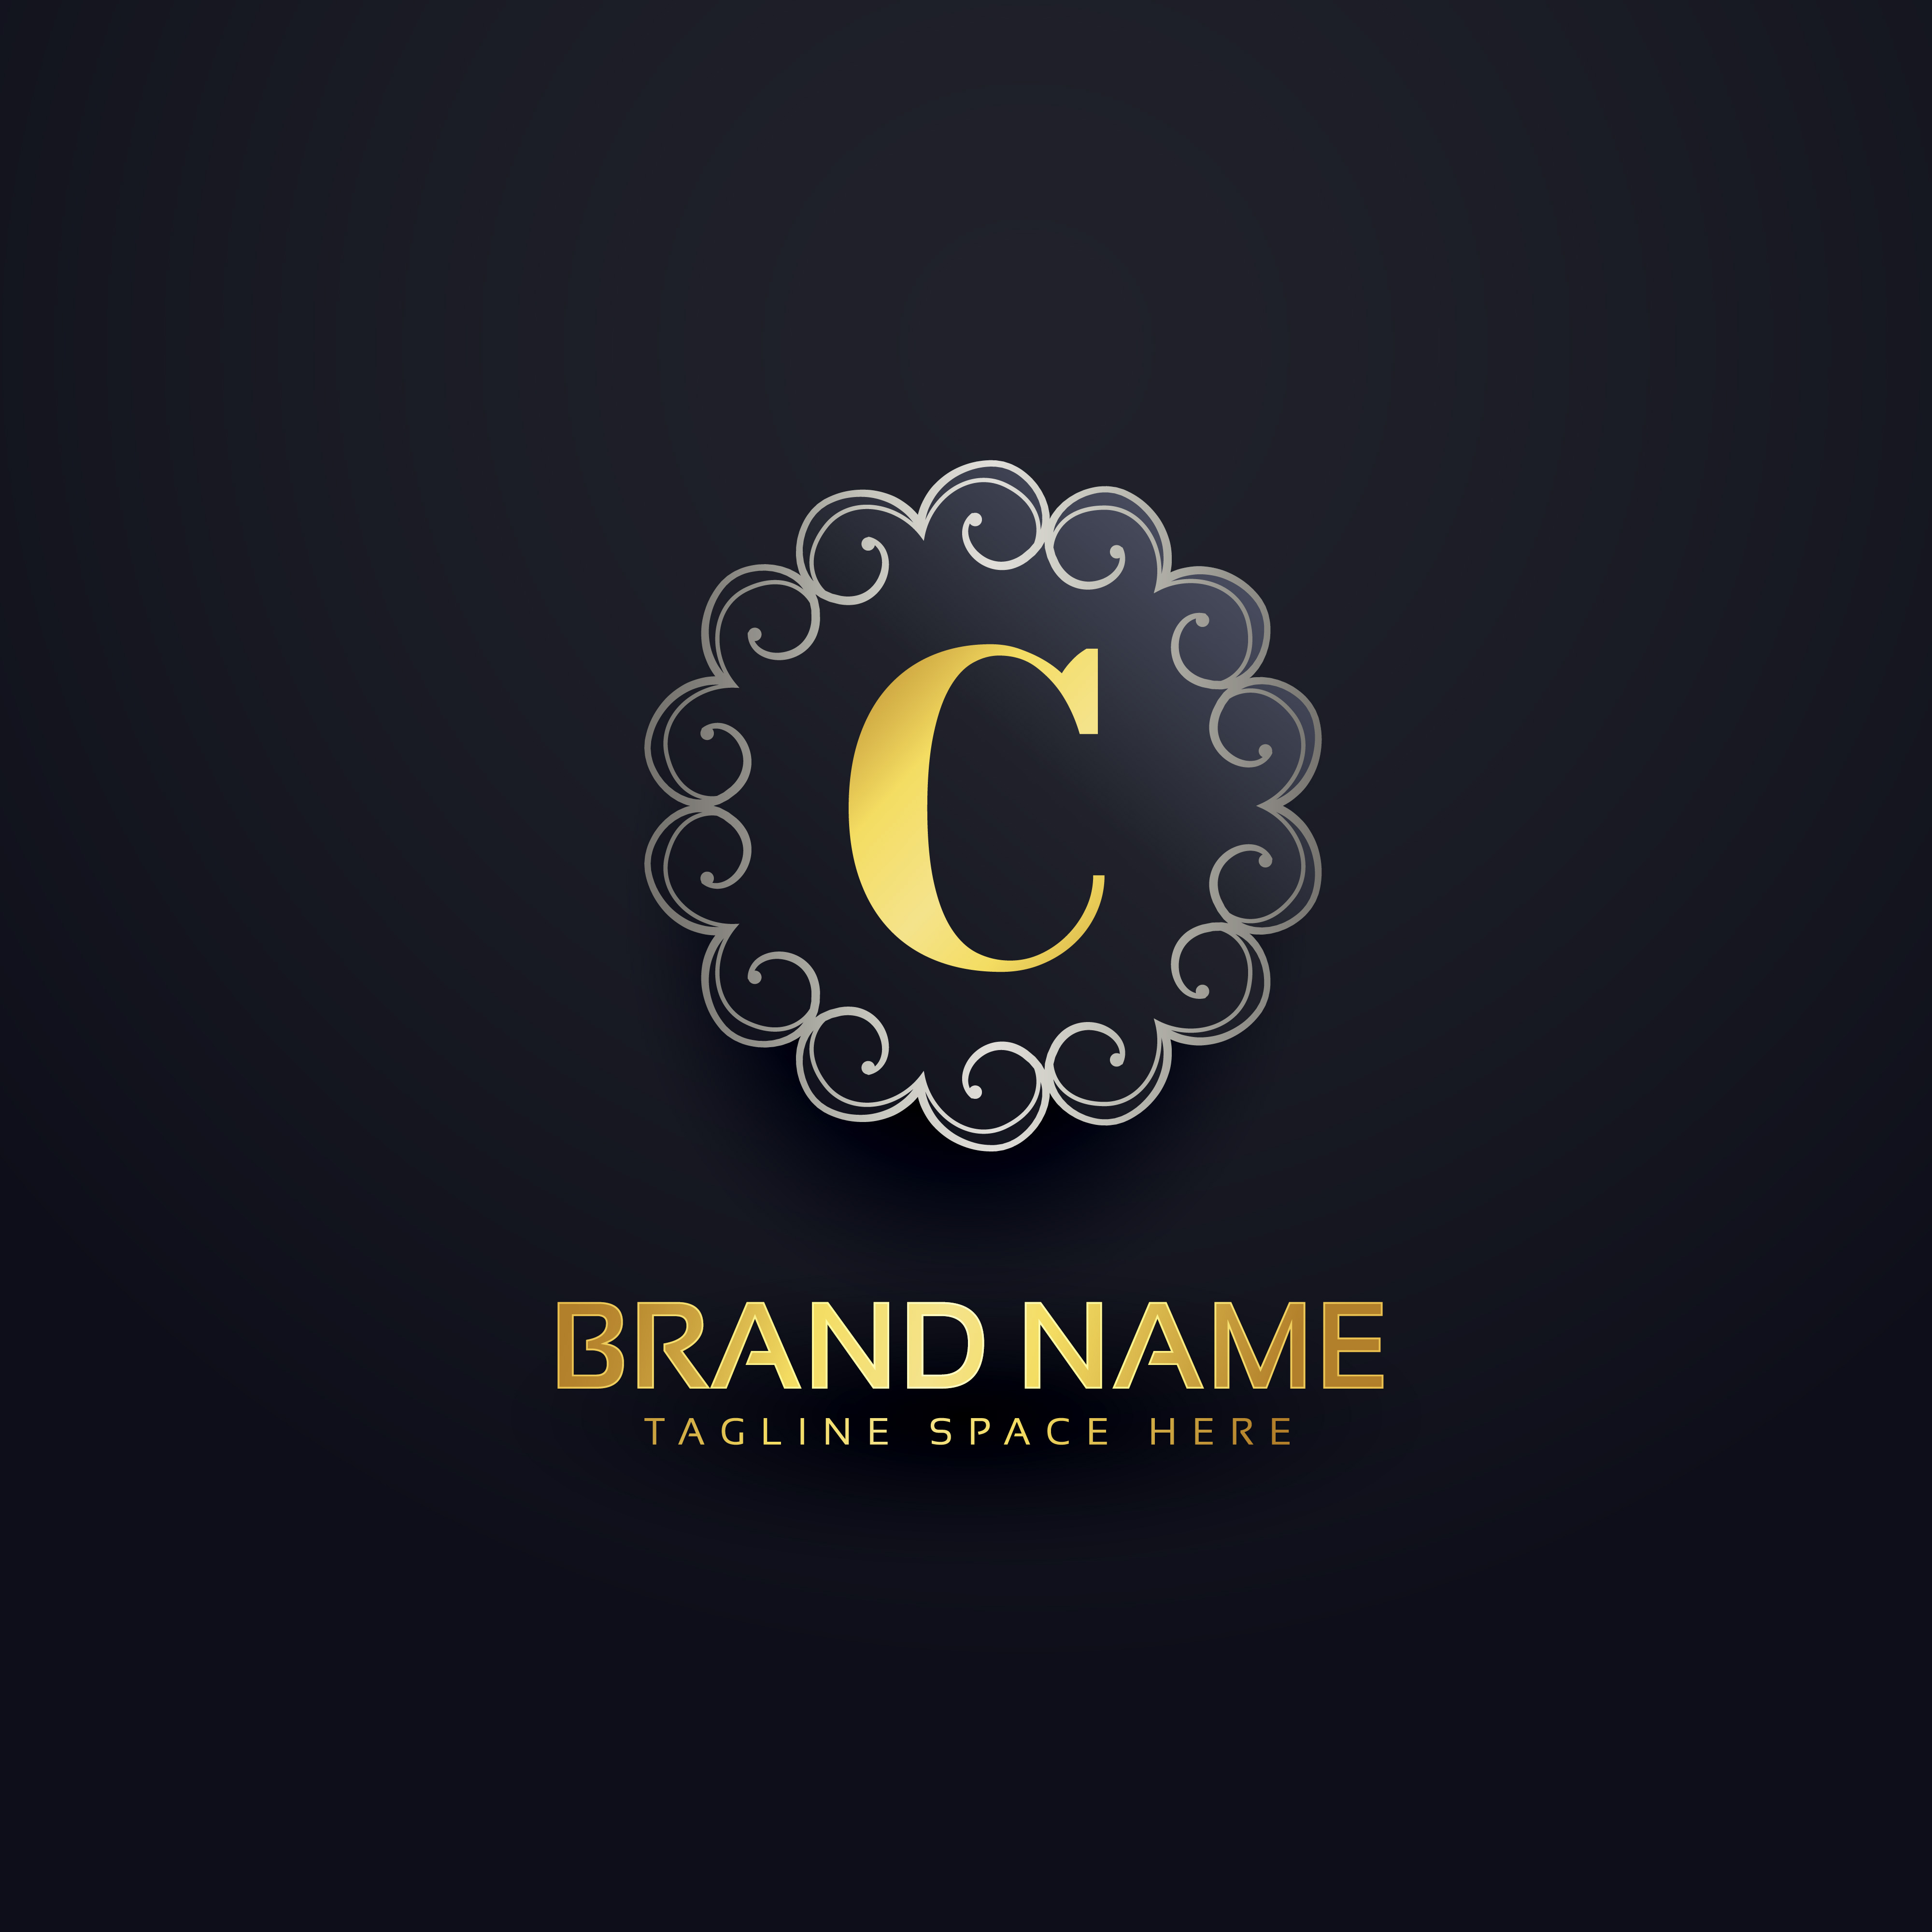 Set Of Monochrome Labels With Luxury Design: Letter C Logo With Swirls Decoration